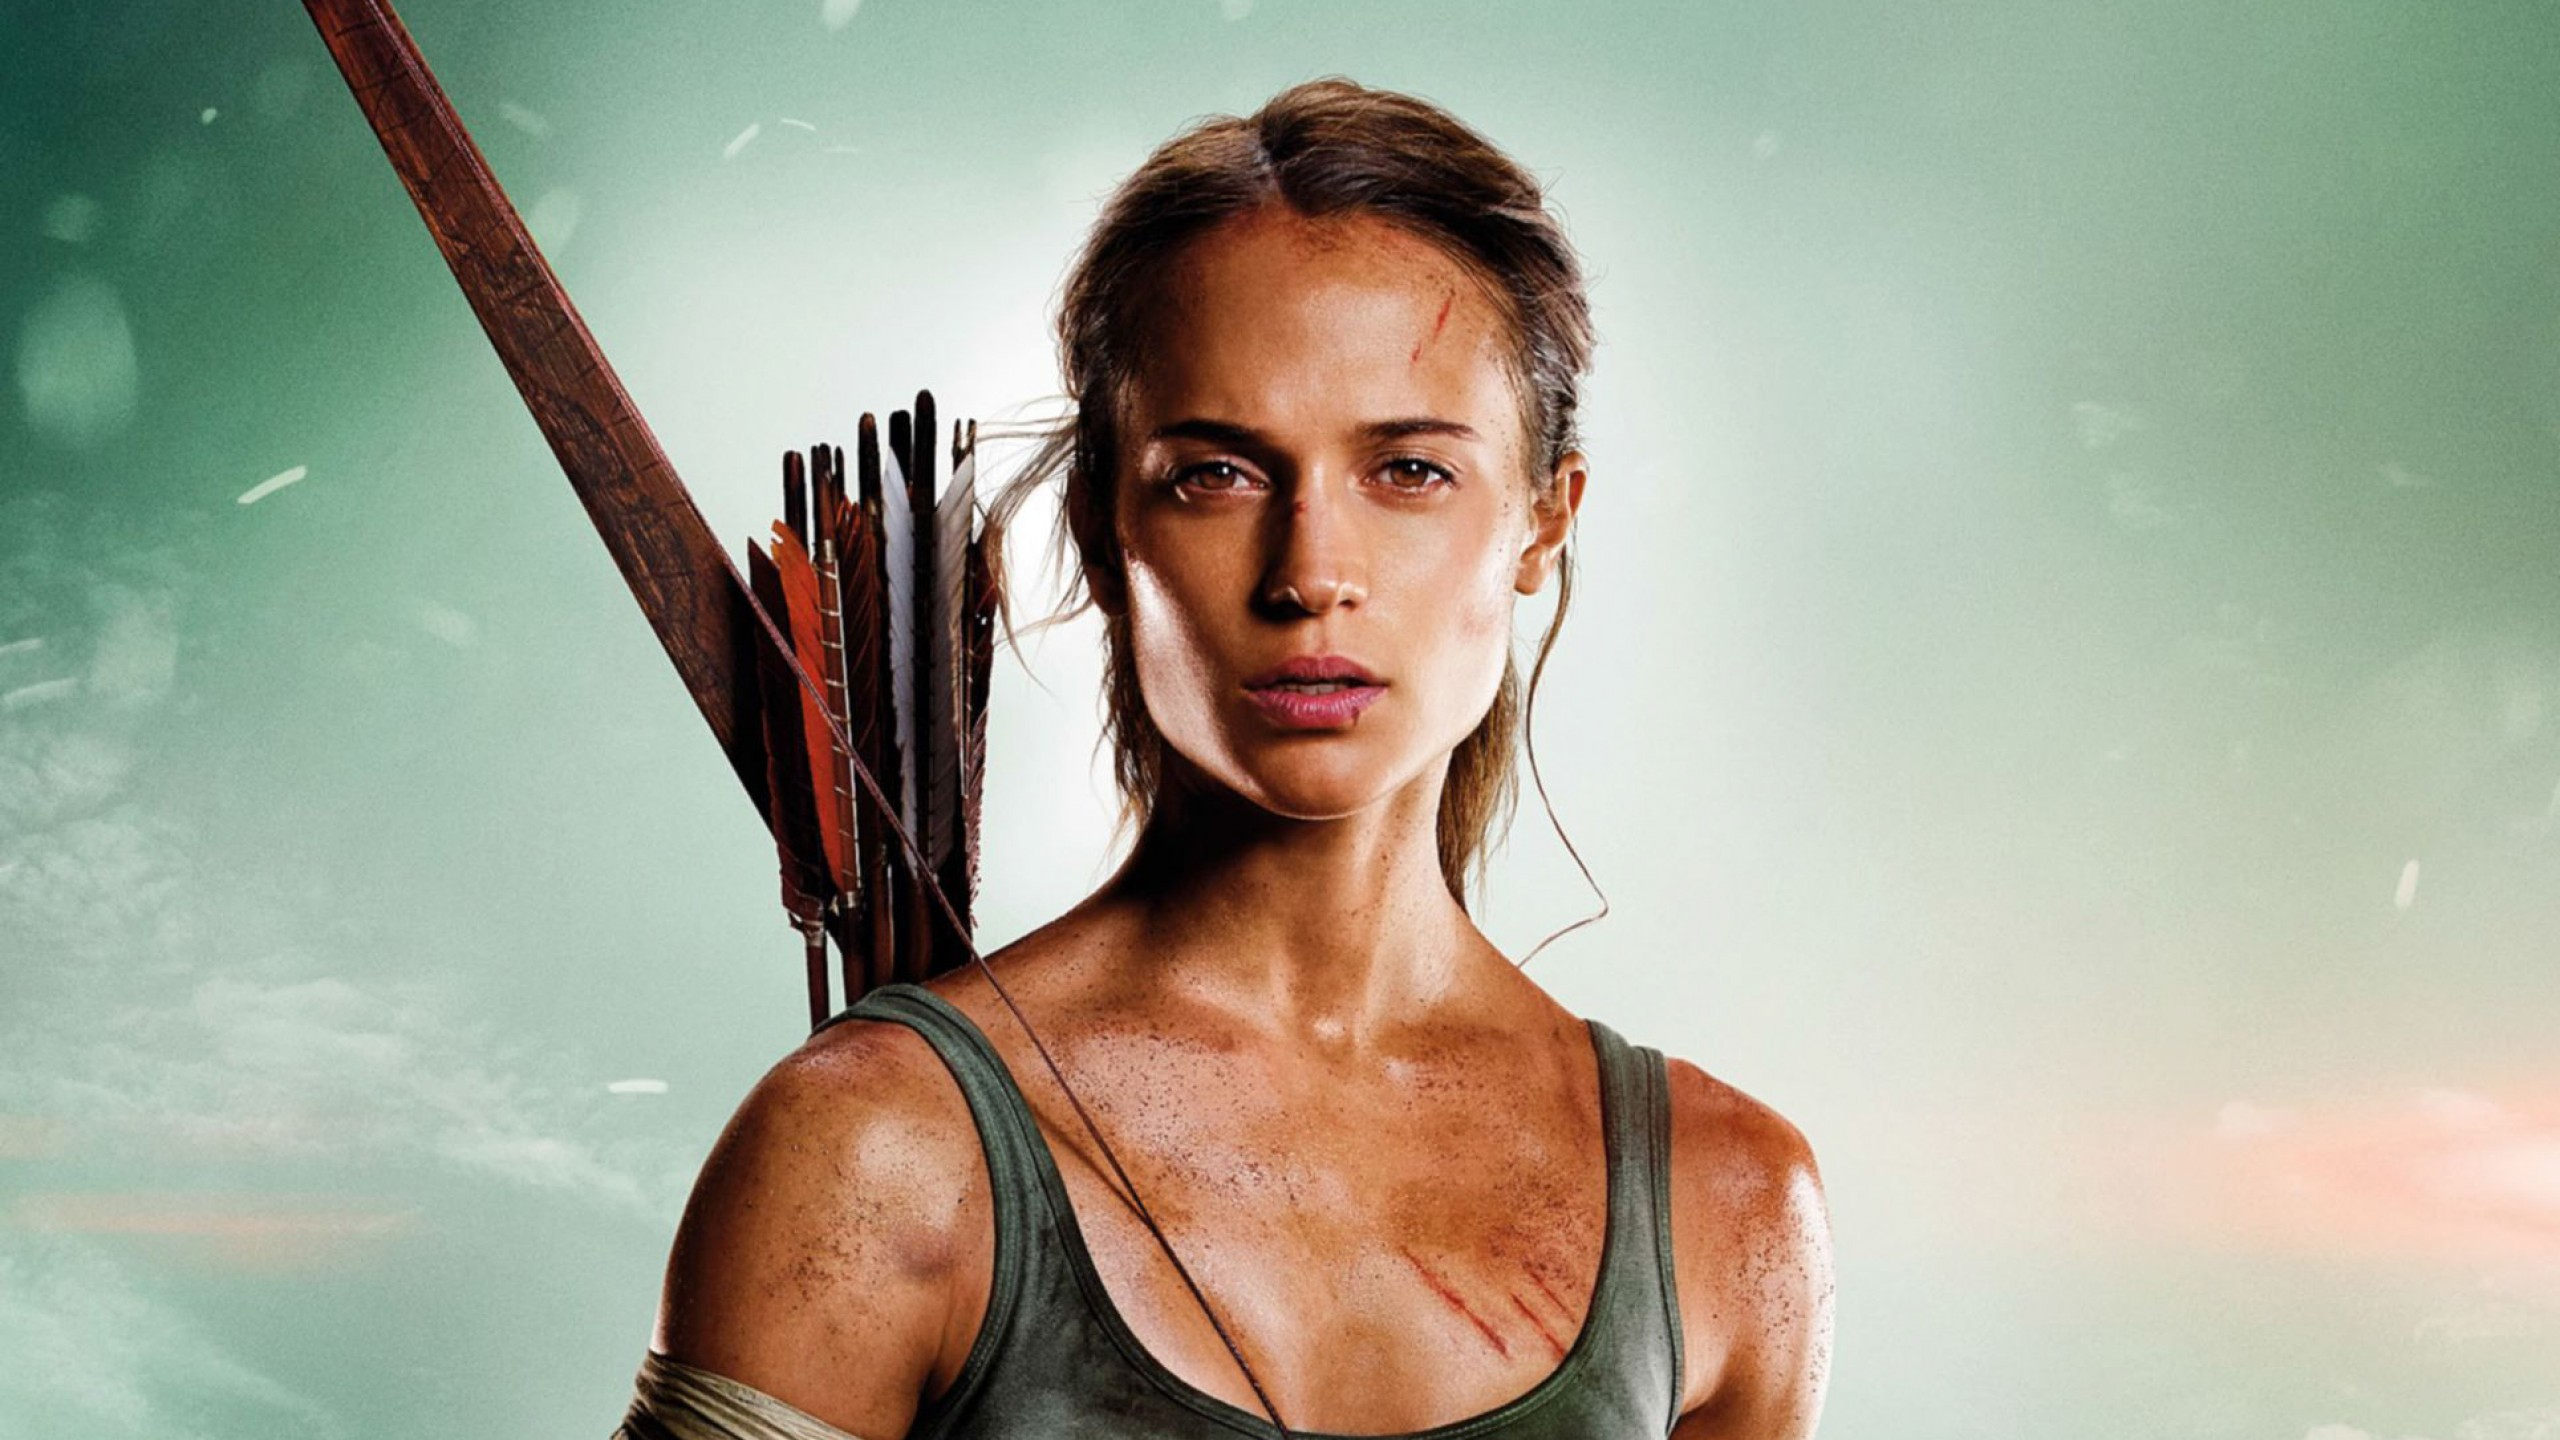 Tomb Raider A Hero S Journey For The Rest Of Us Girls In Capes